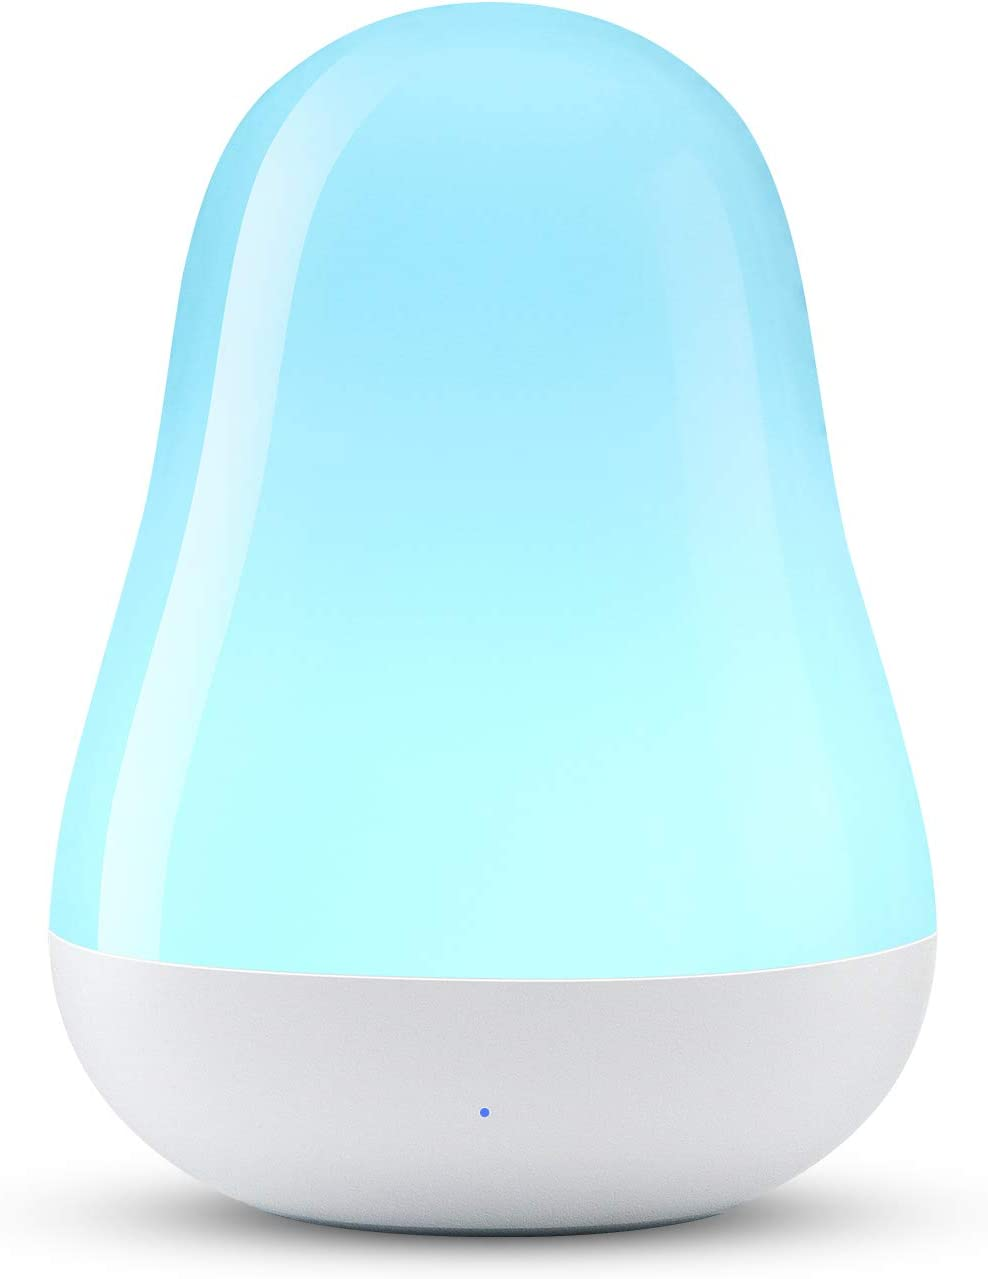 Night Light for Kids,Luposwiten Touch Control Nursery Night Lights with Color Changing, Dimmable Bedside Light for Breastfeeding,Daper Change